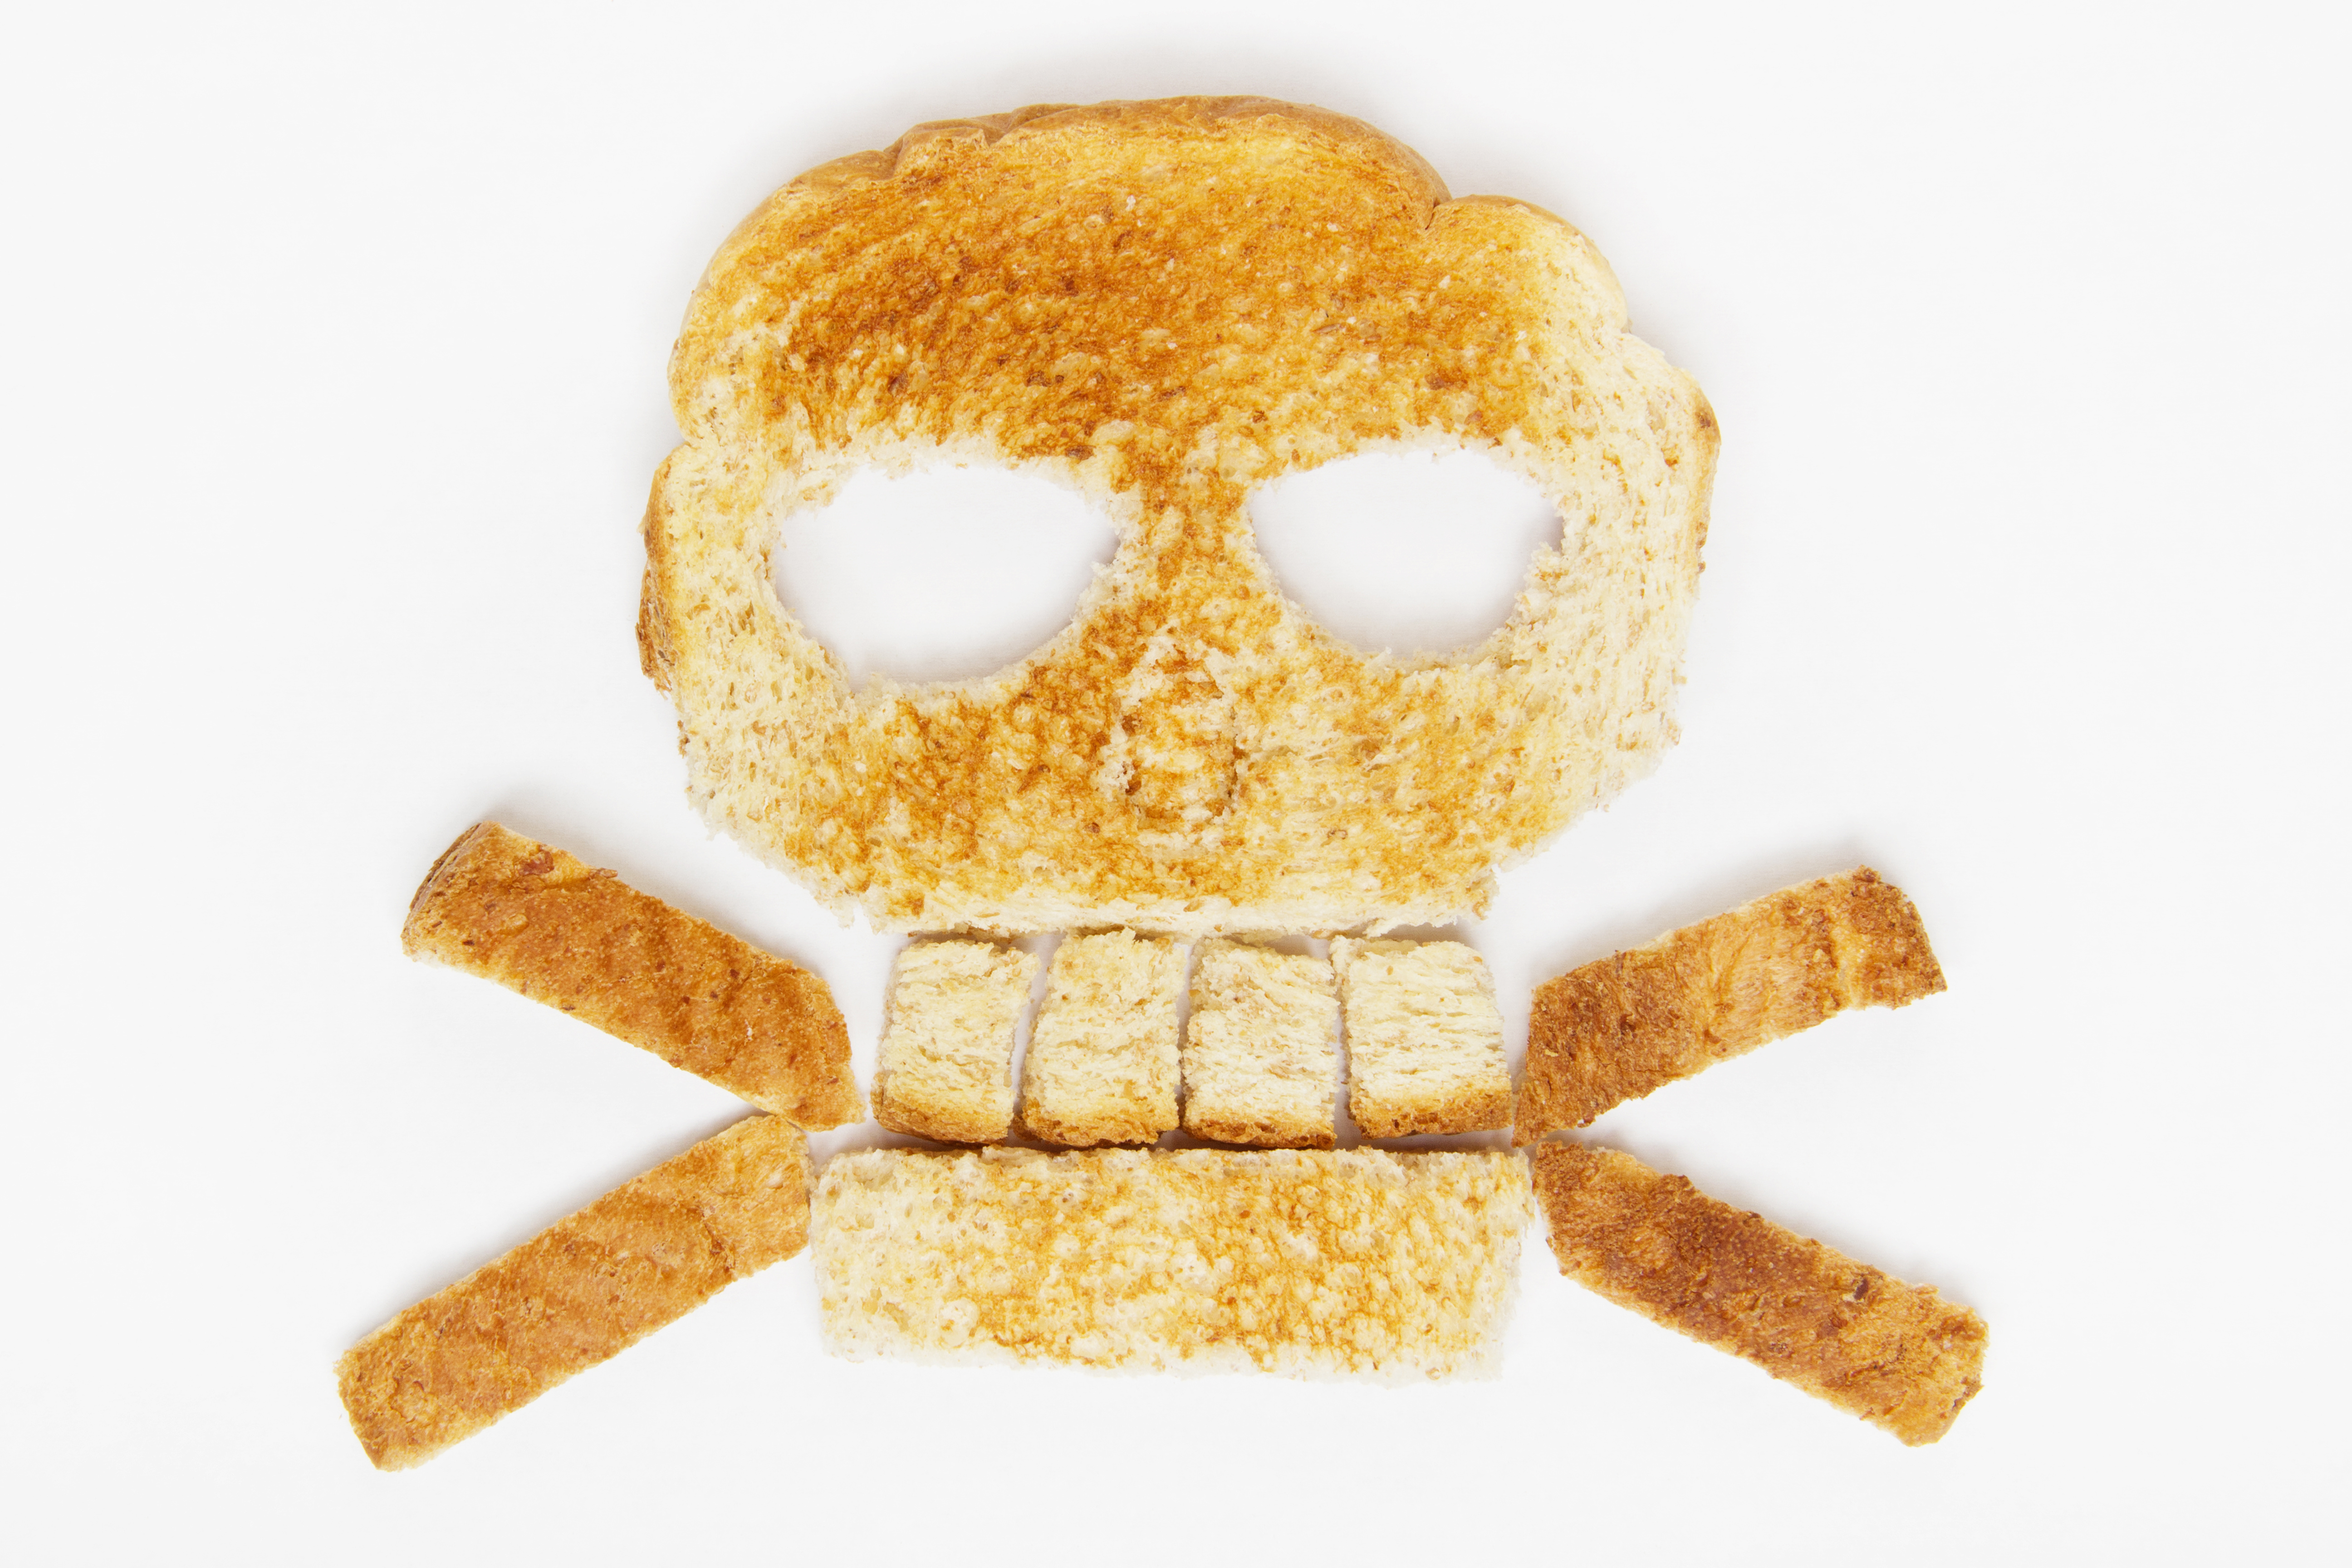 Stock image of bread skull and crossbones on white background